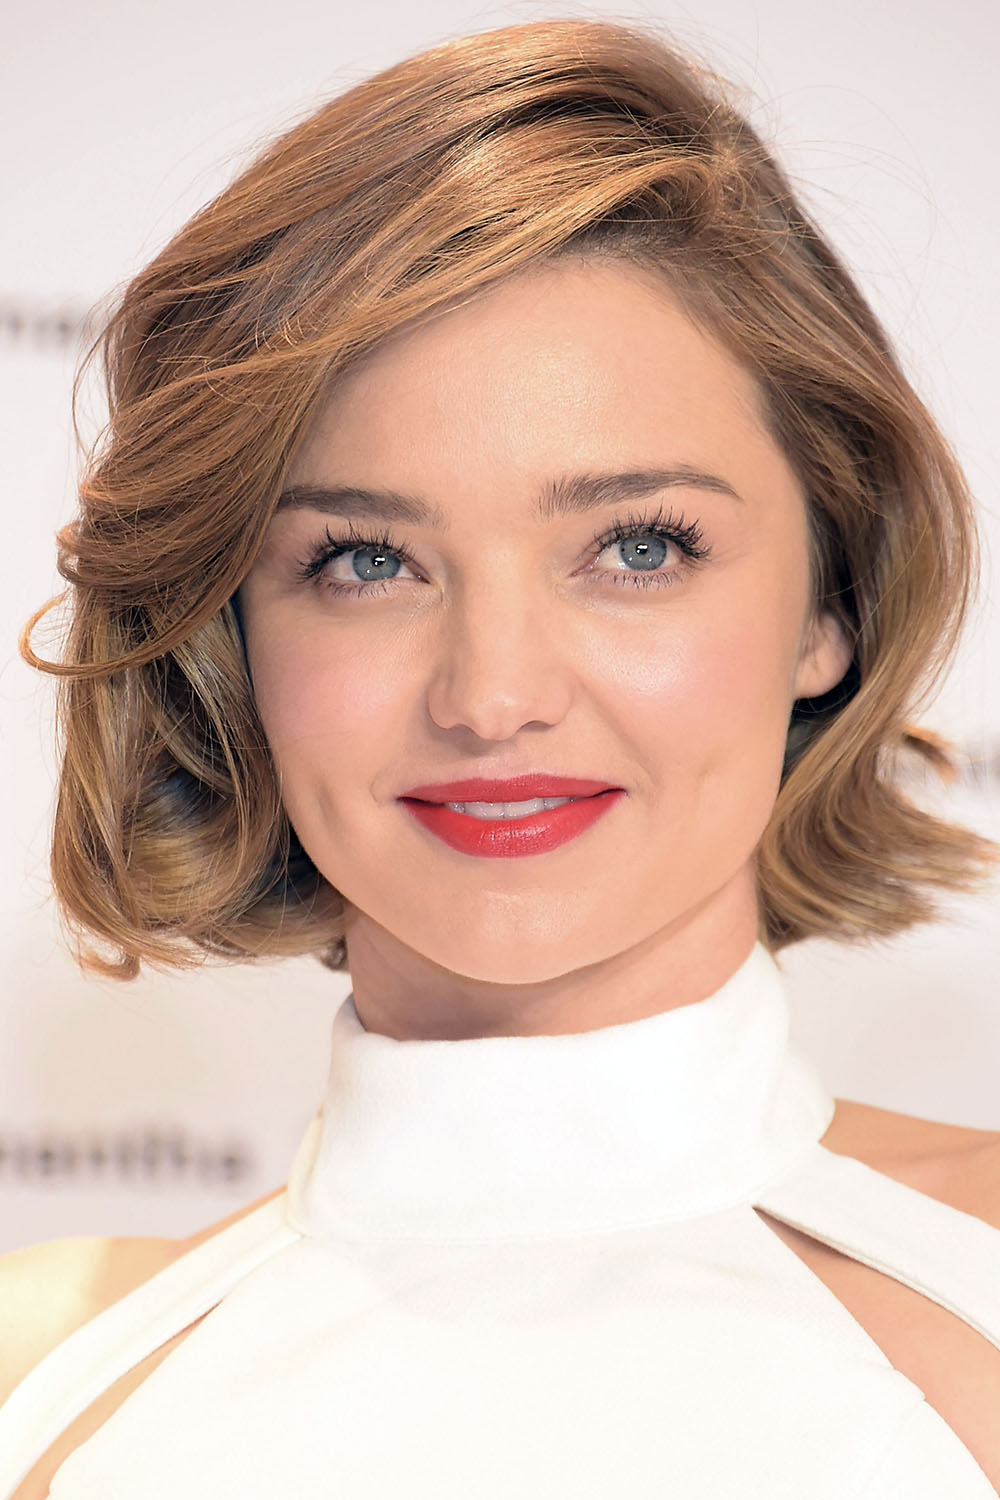 Hairstyles Photos : Best Bob and Lob Haircuts 2016 - Celebrity Long Bob Hairstyles